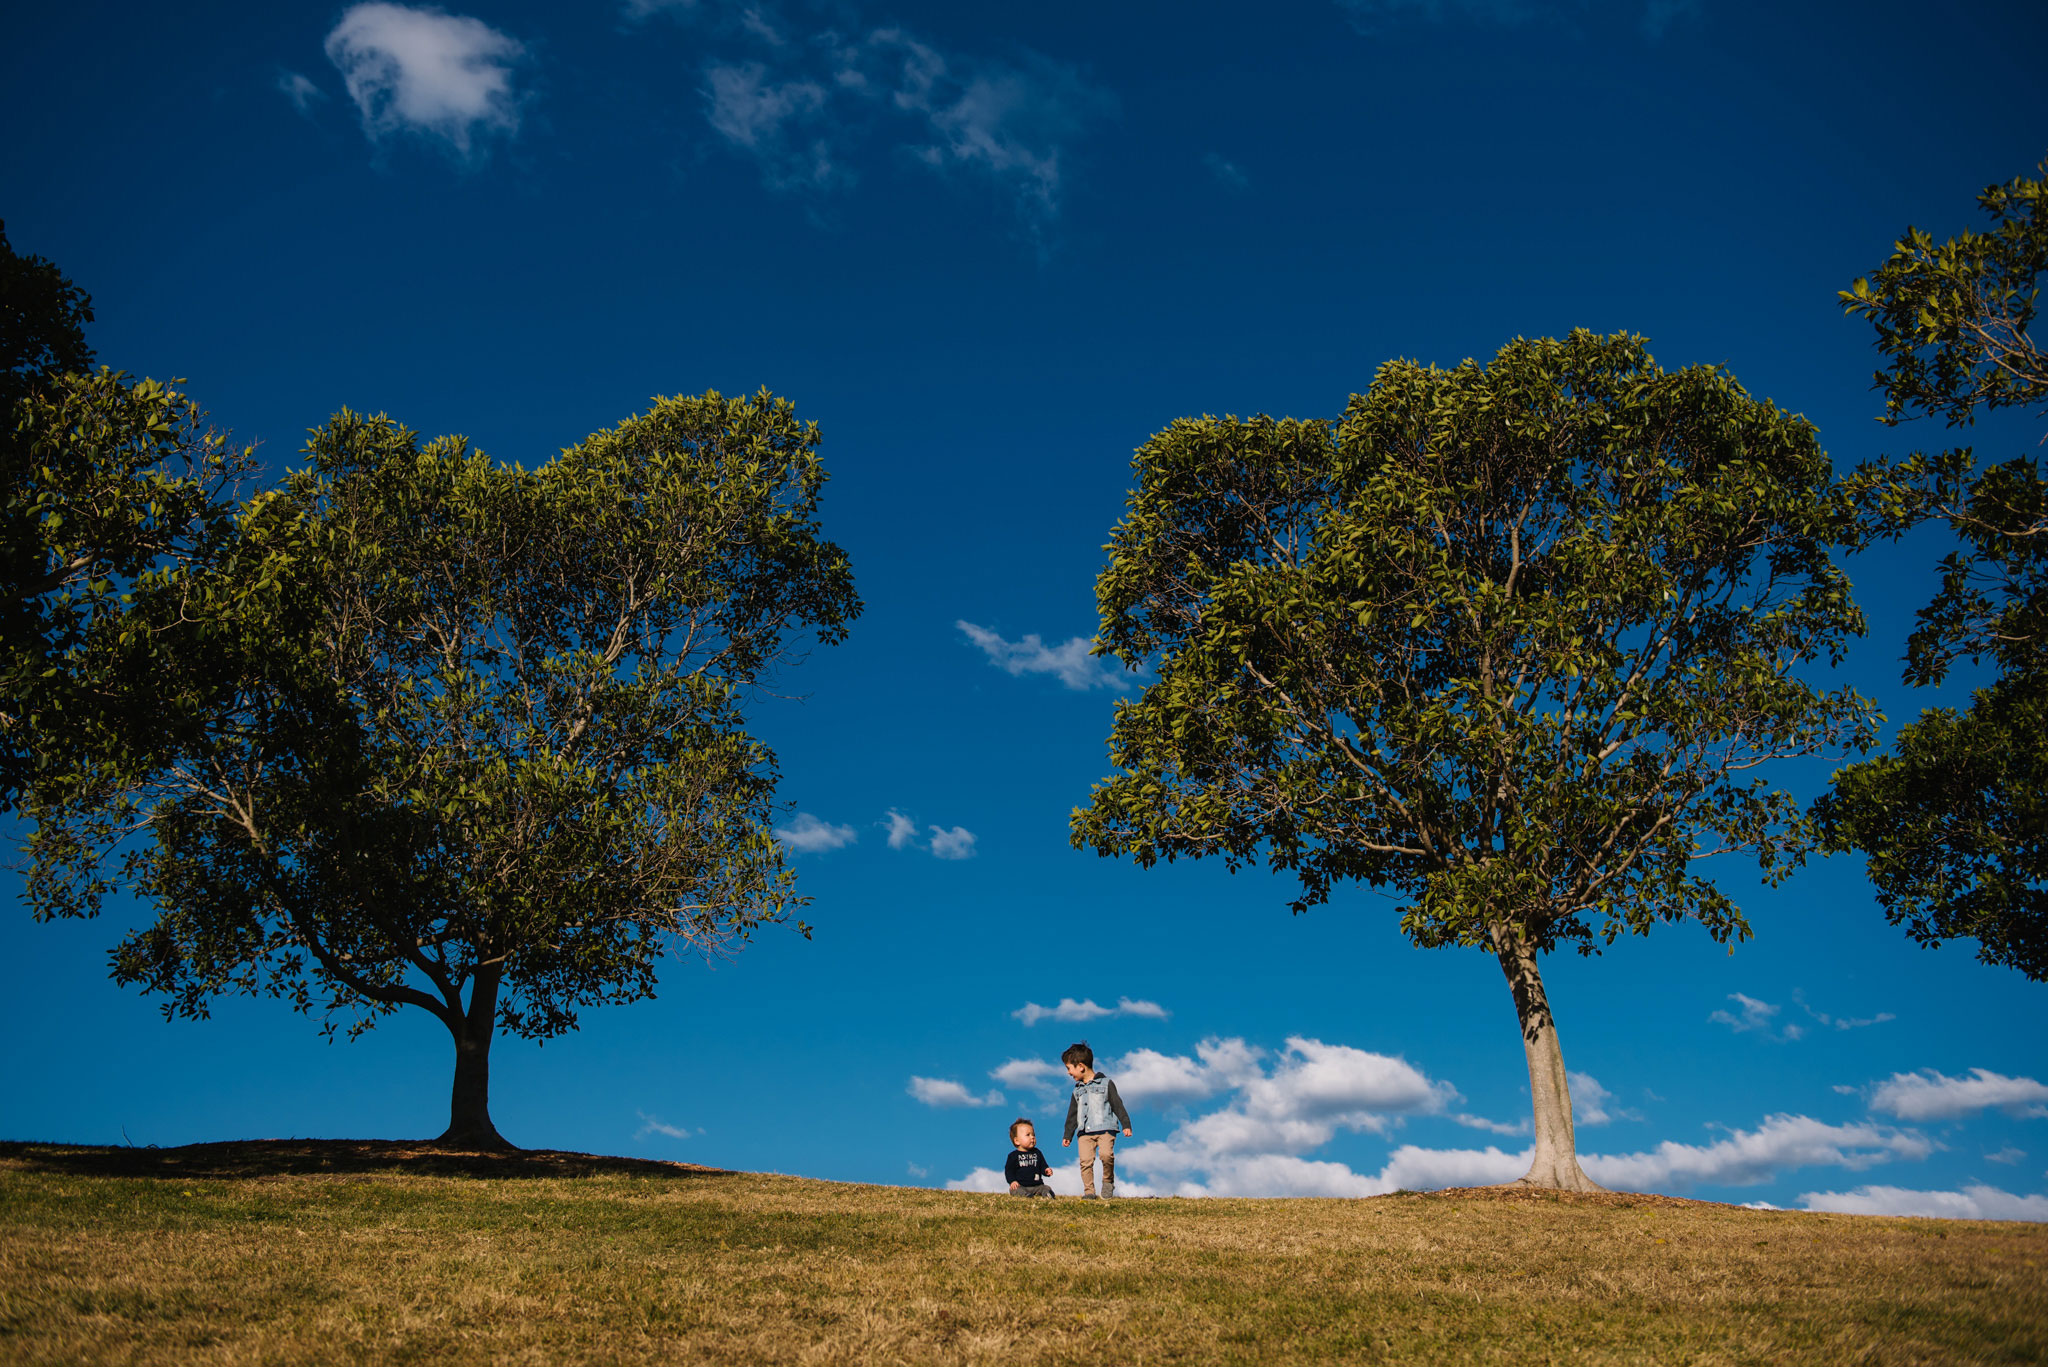 Brothers in Sydney Park